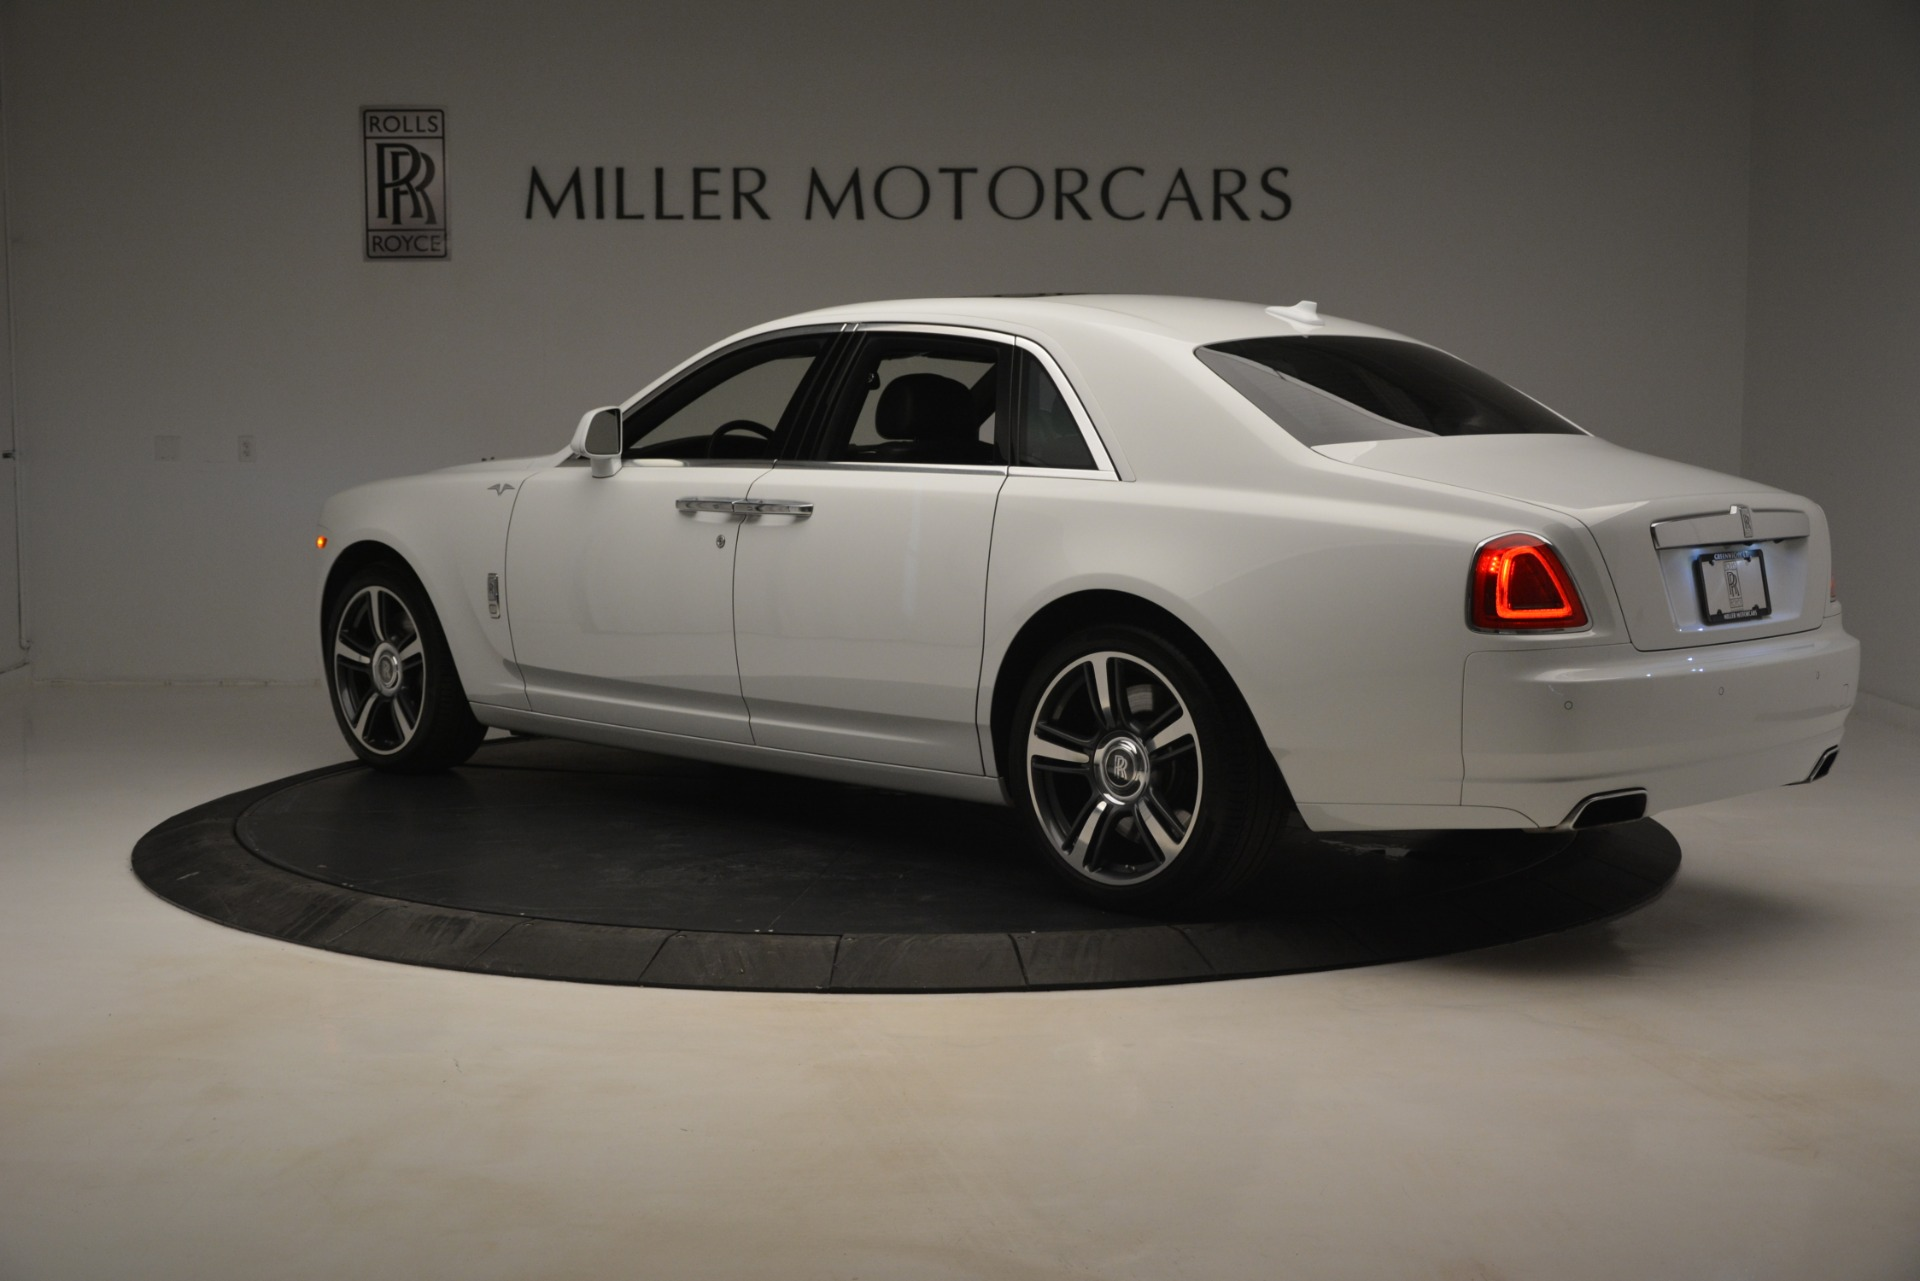 Used 2014 Rolls-Royce Ghost V-Spec For Sale In Westport, CT 2989_p5